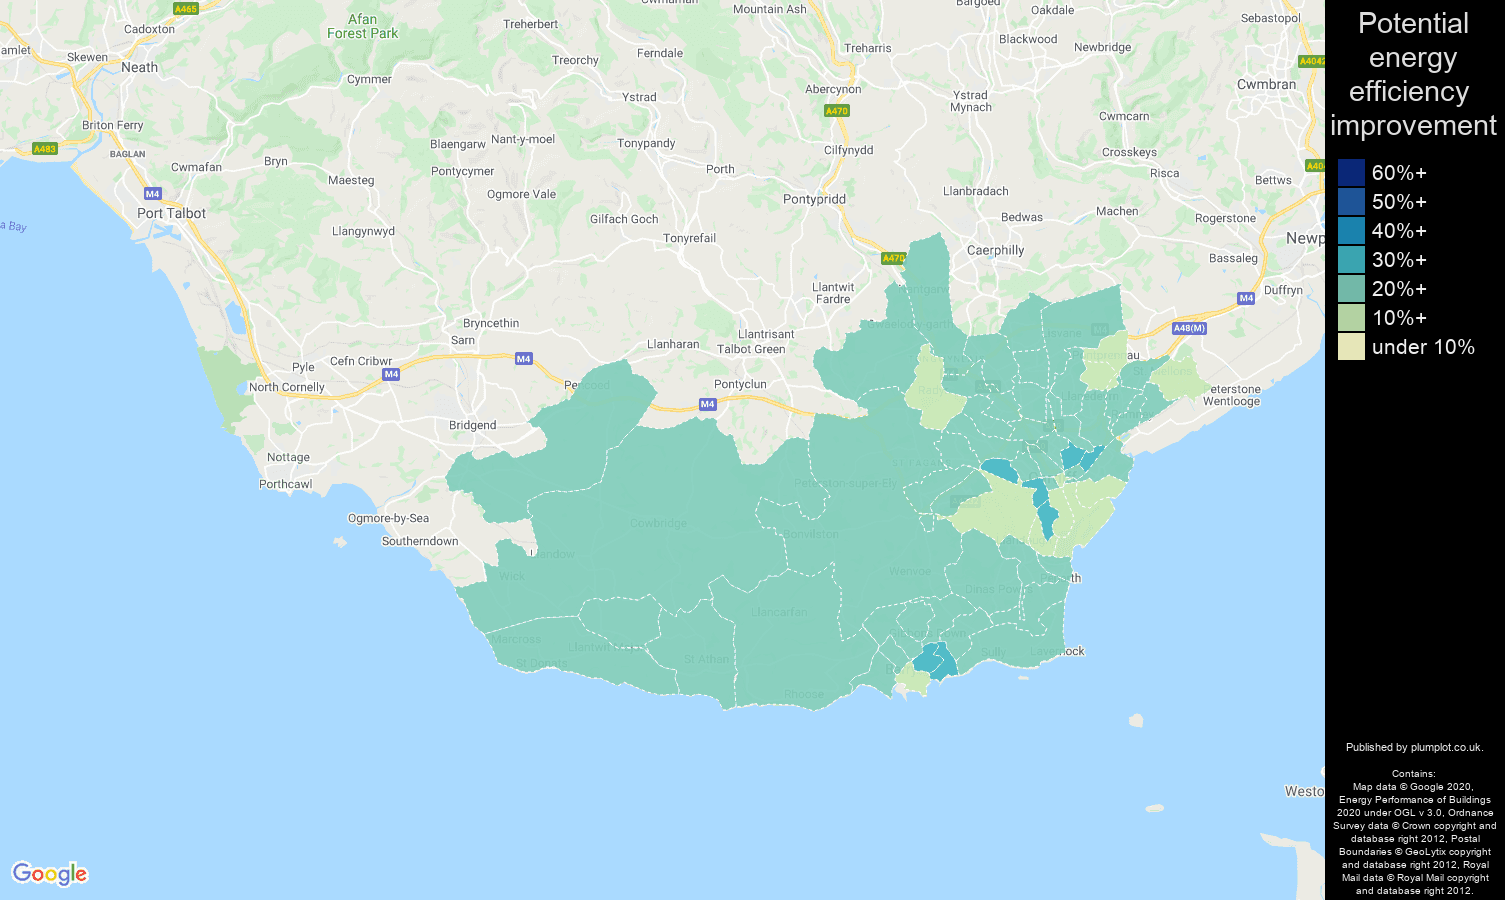 South Glamorgan map of potential energy efficiency improvement of houses